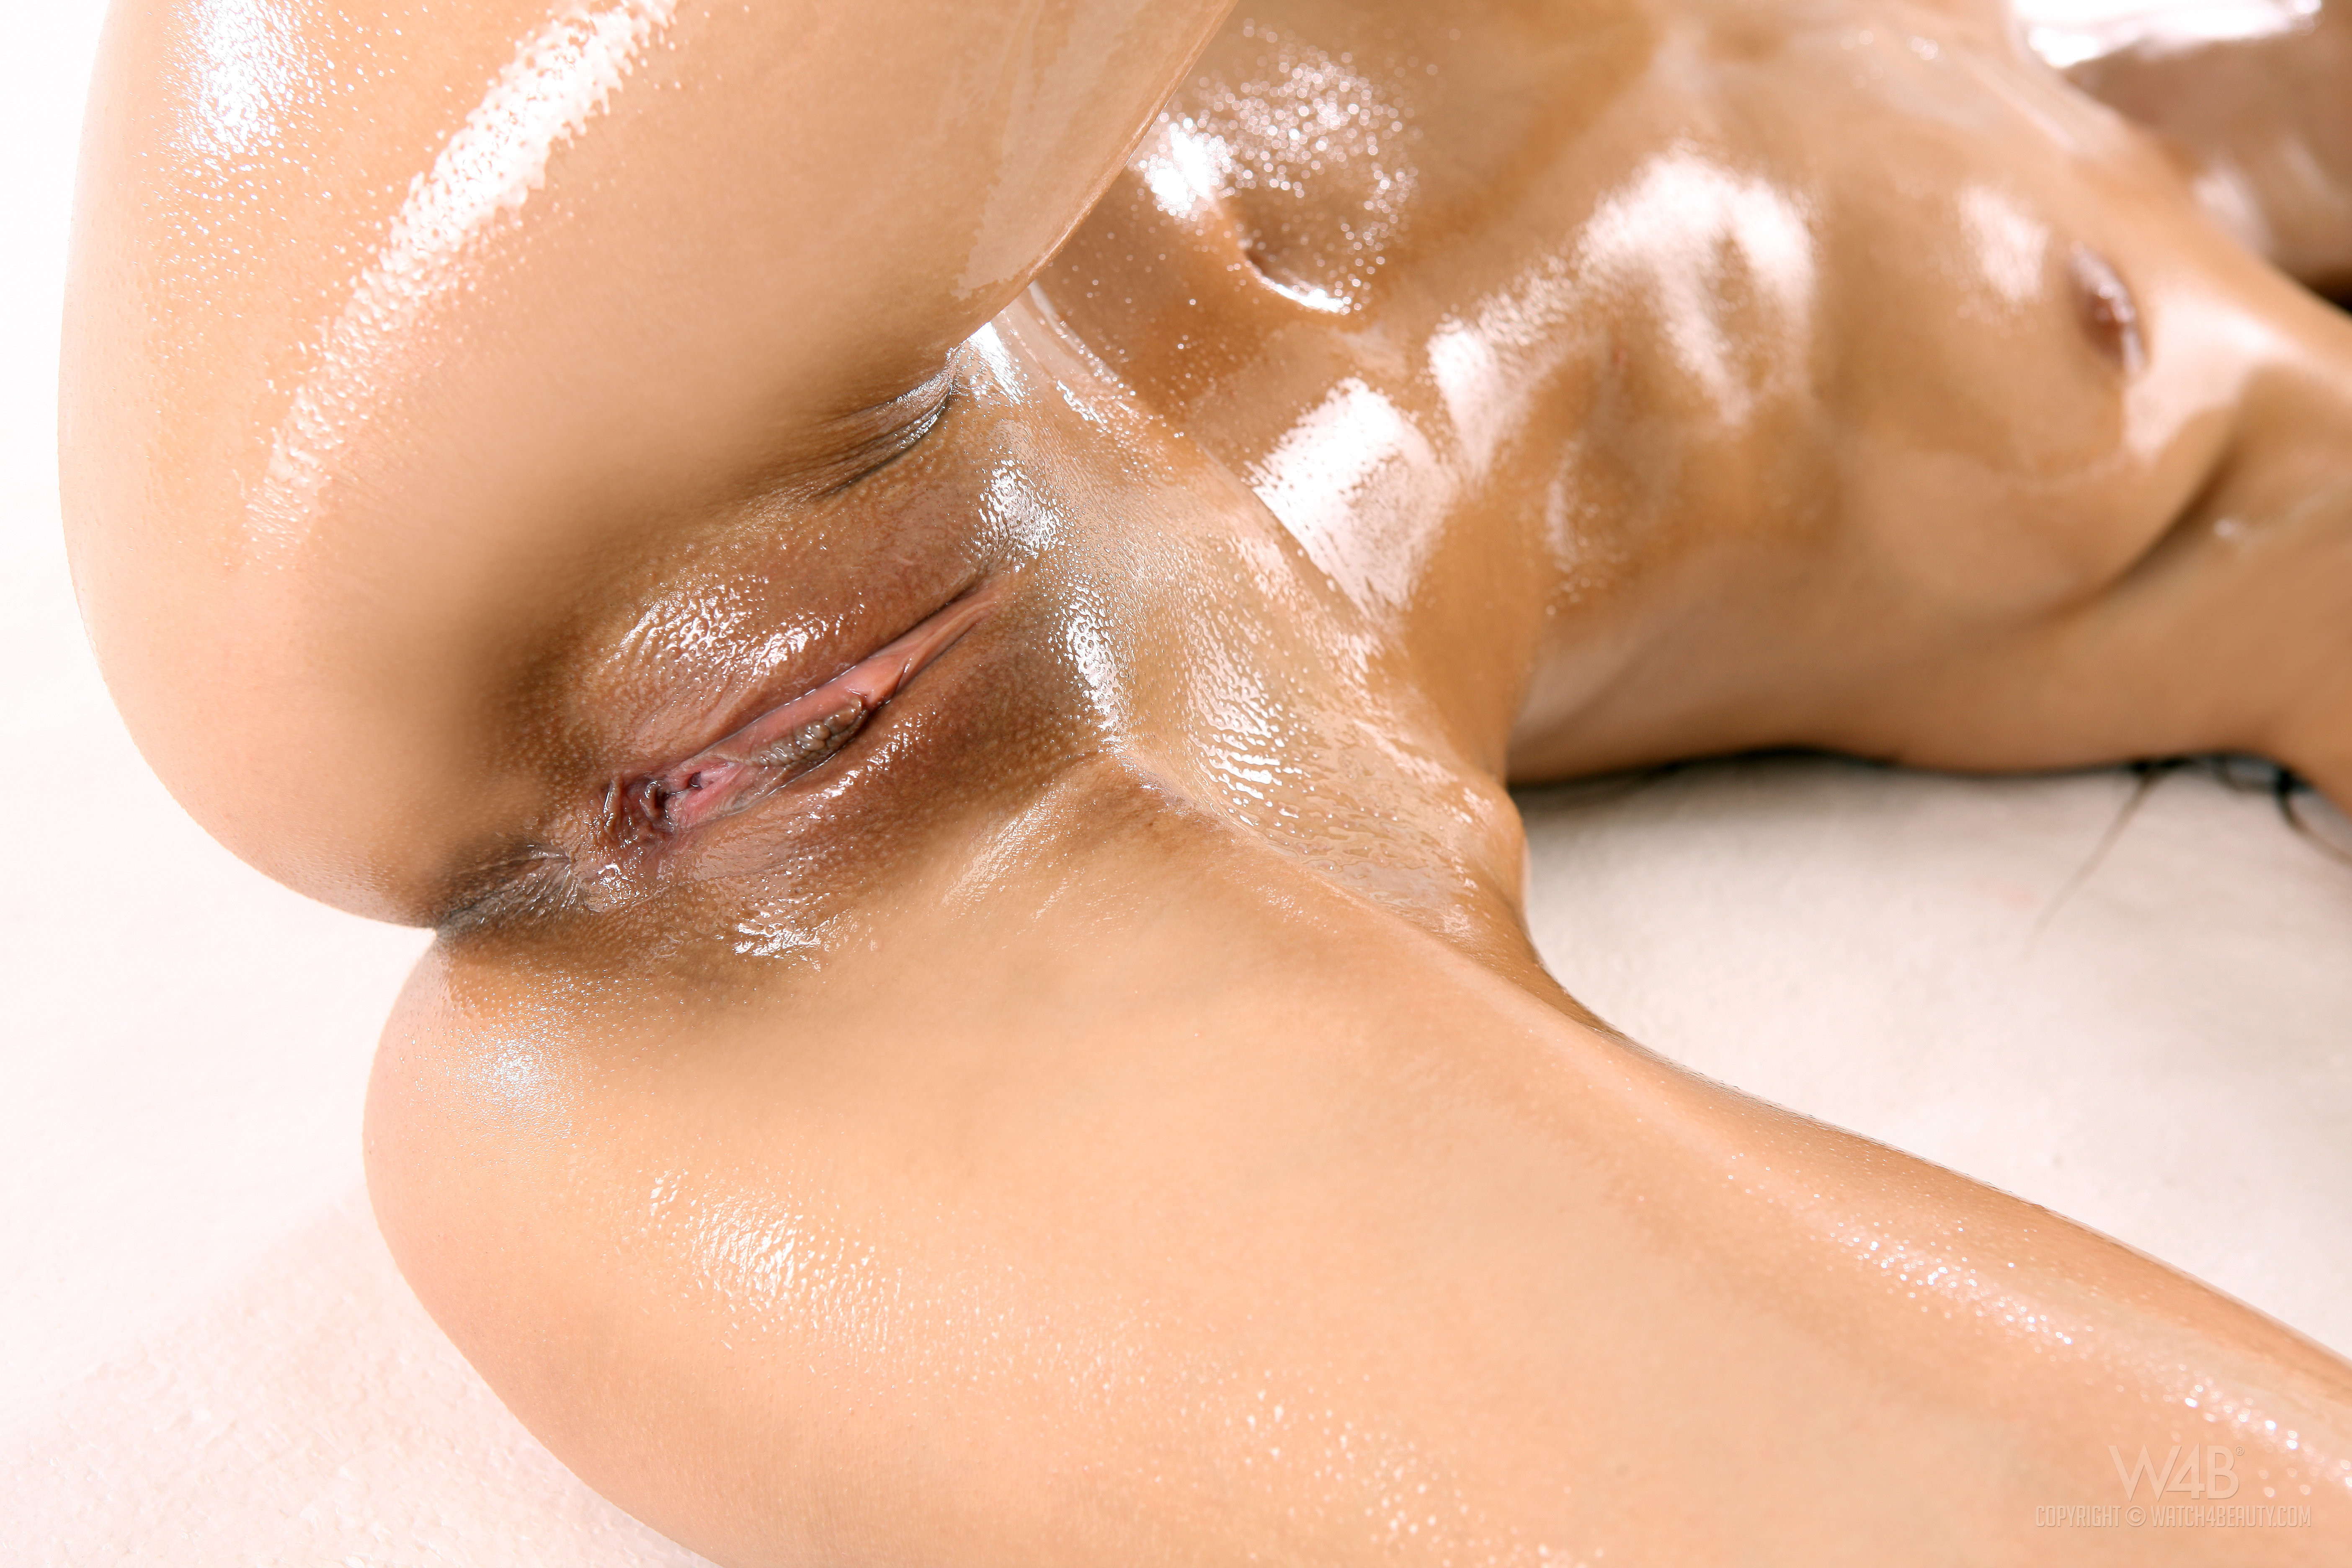 Hot Oiled Pussy Close Up